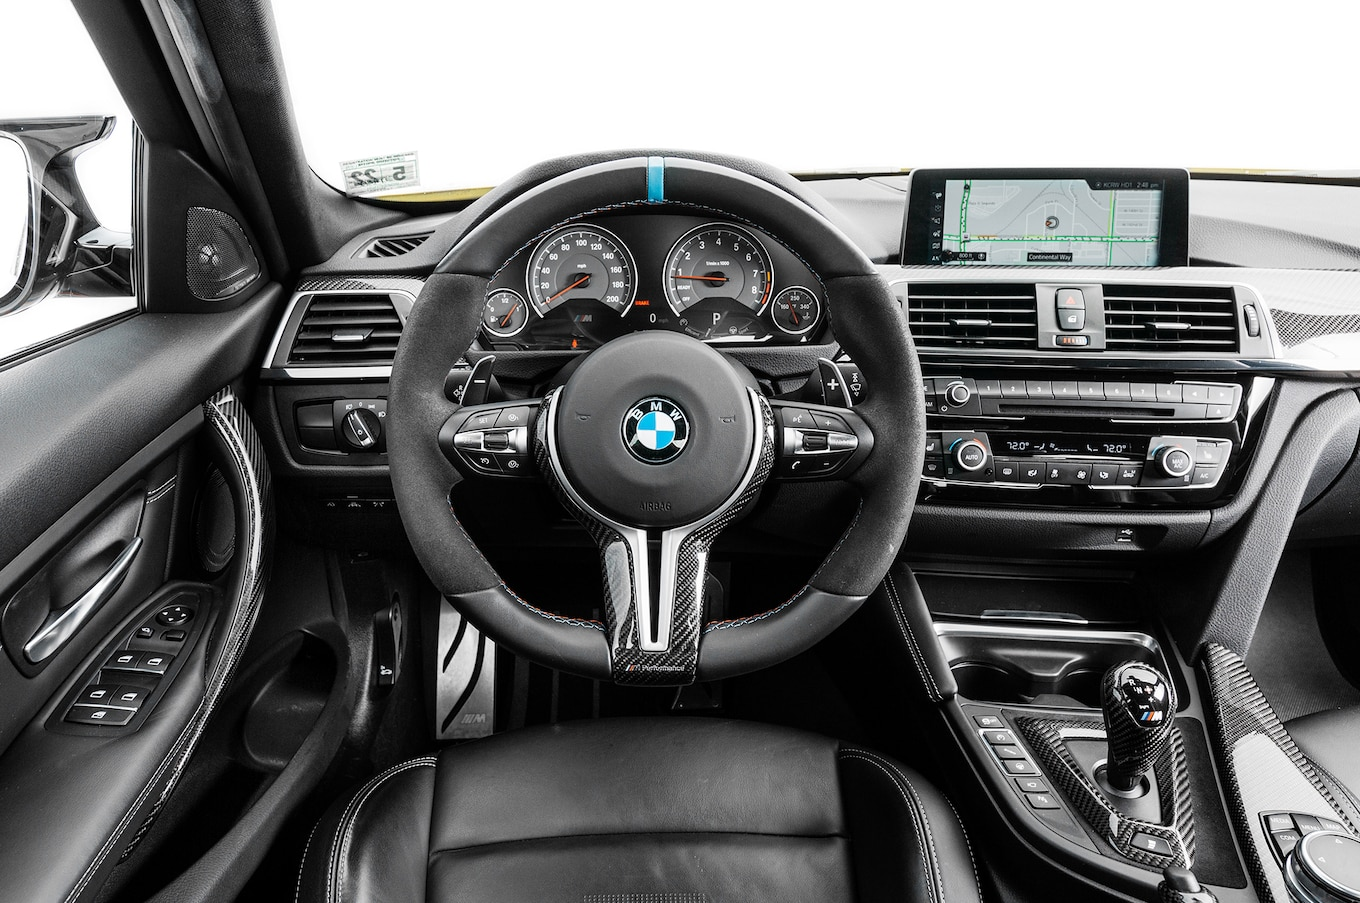 2017 BMW M3 With M Performance Parts First Test Review Dial M for Modification  Motor Trend